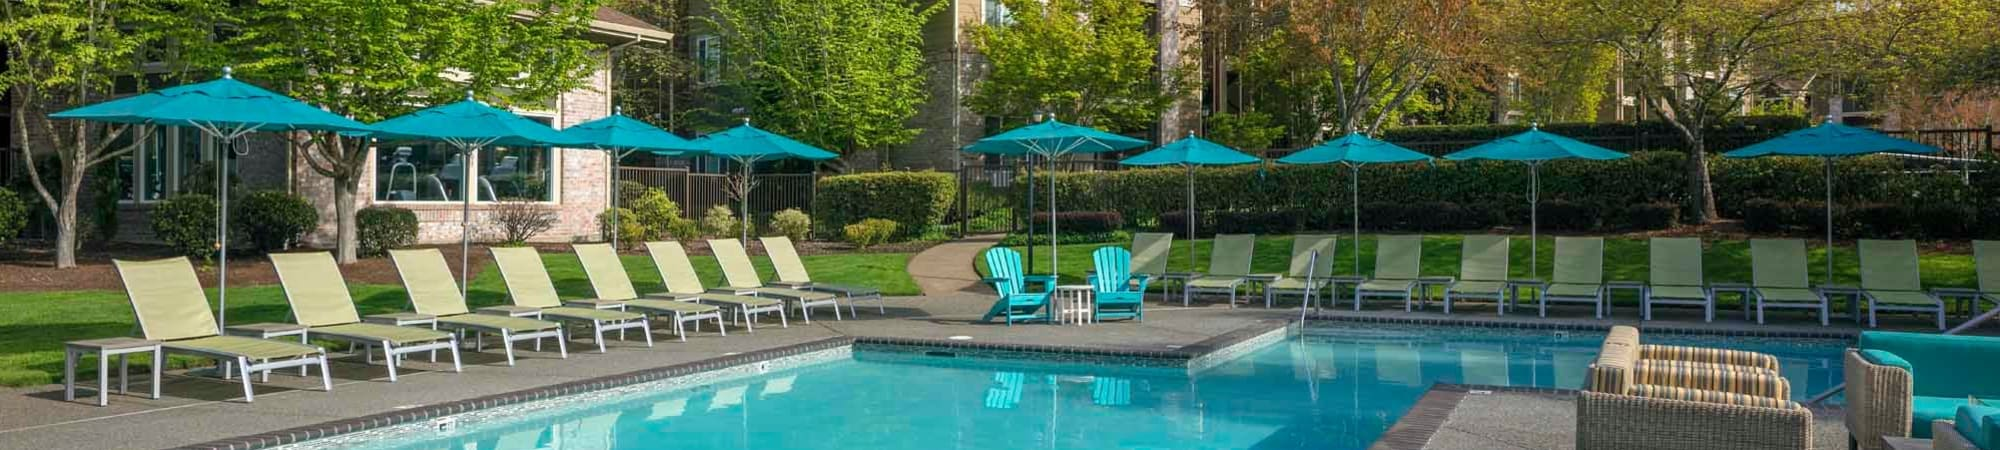 Pet Friendly The Grove at Orenco Station with ample space for your pets, in Hillsboro, Oregon